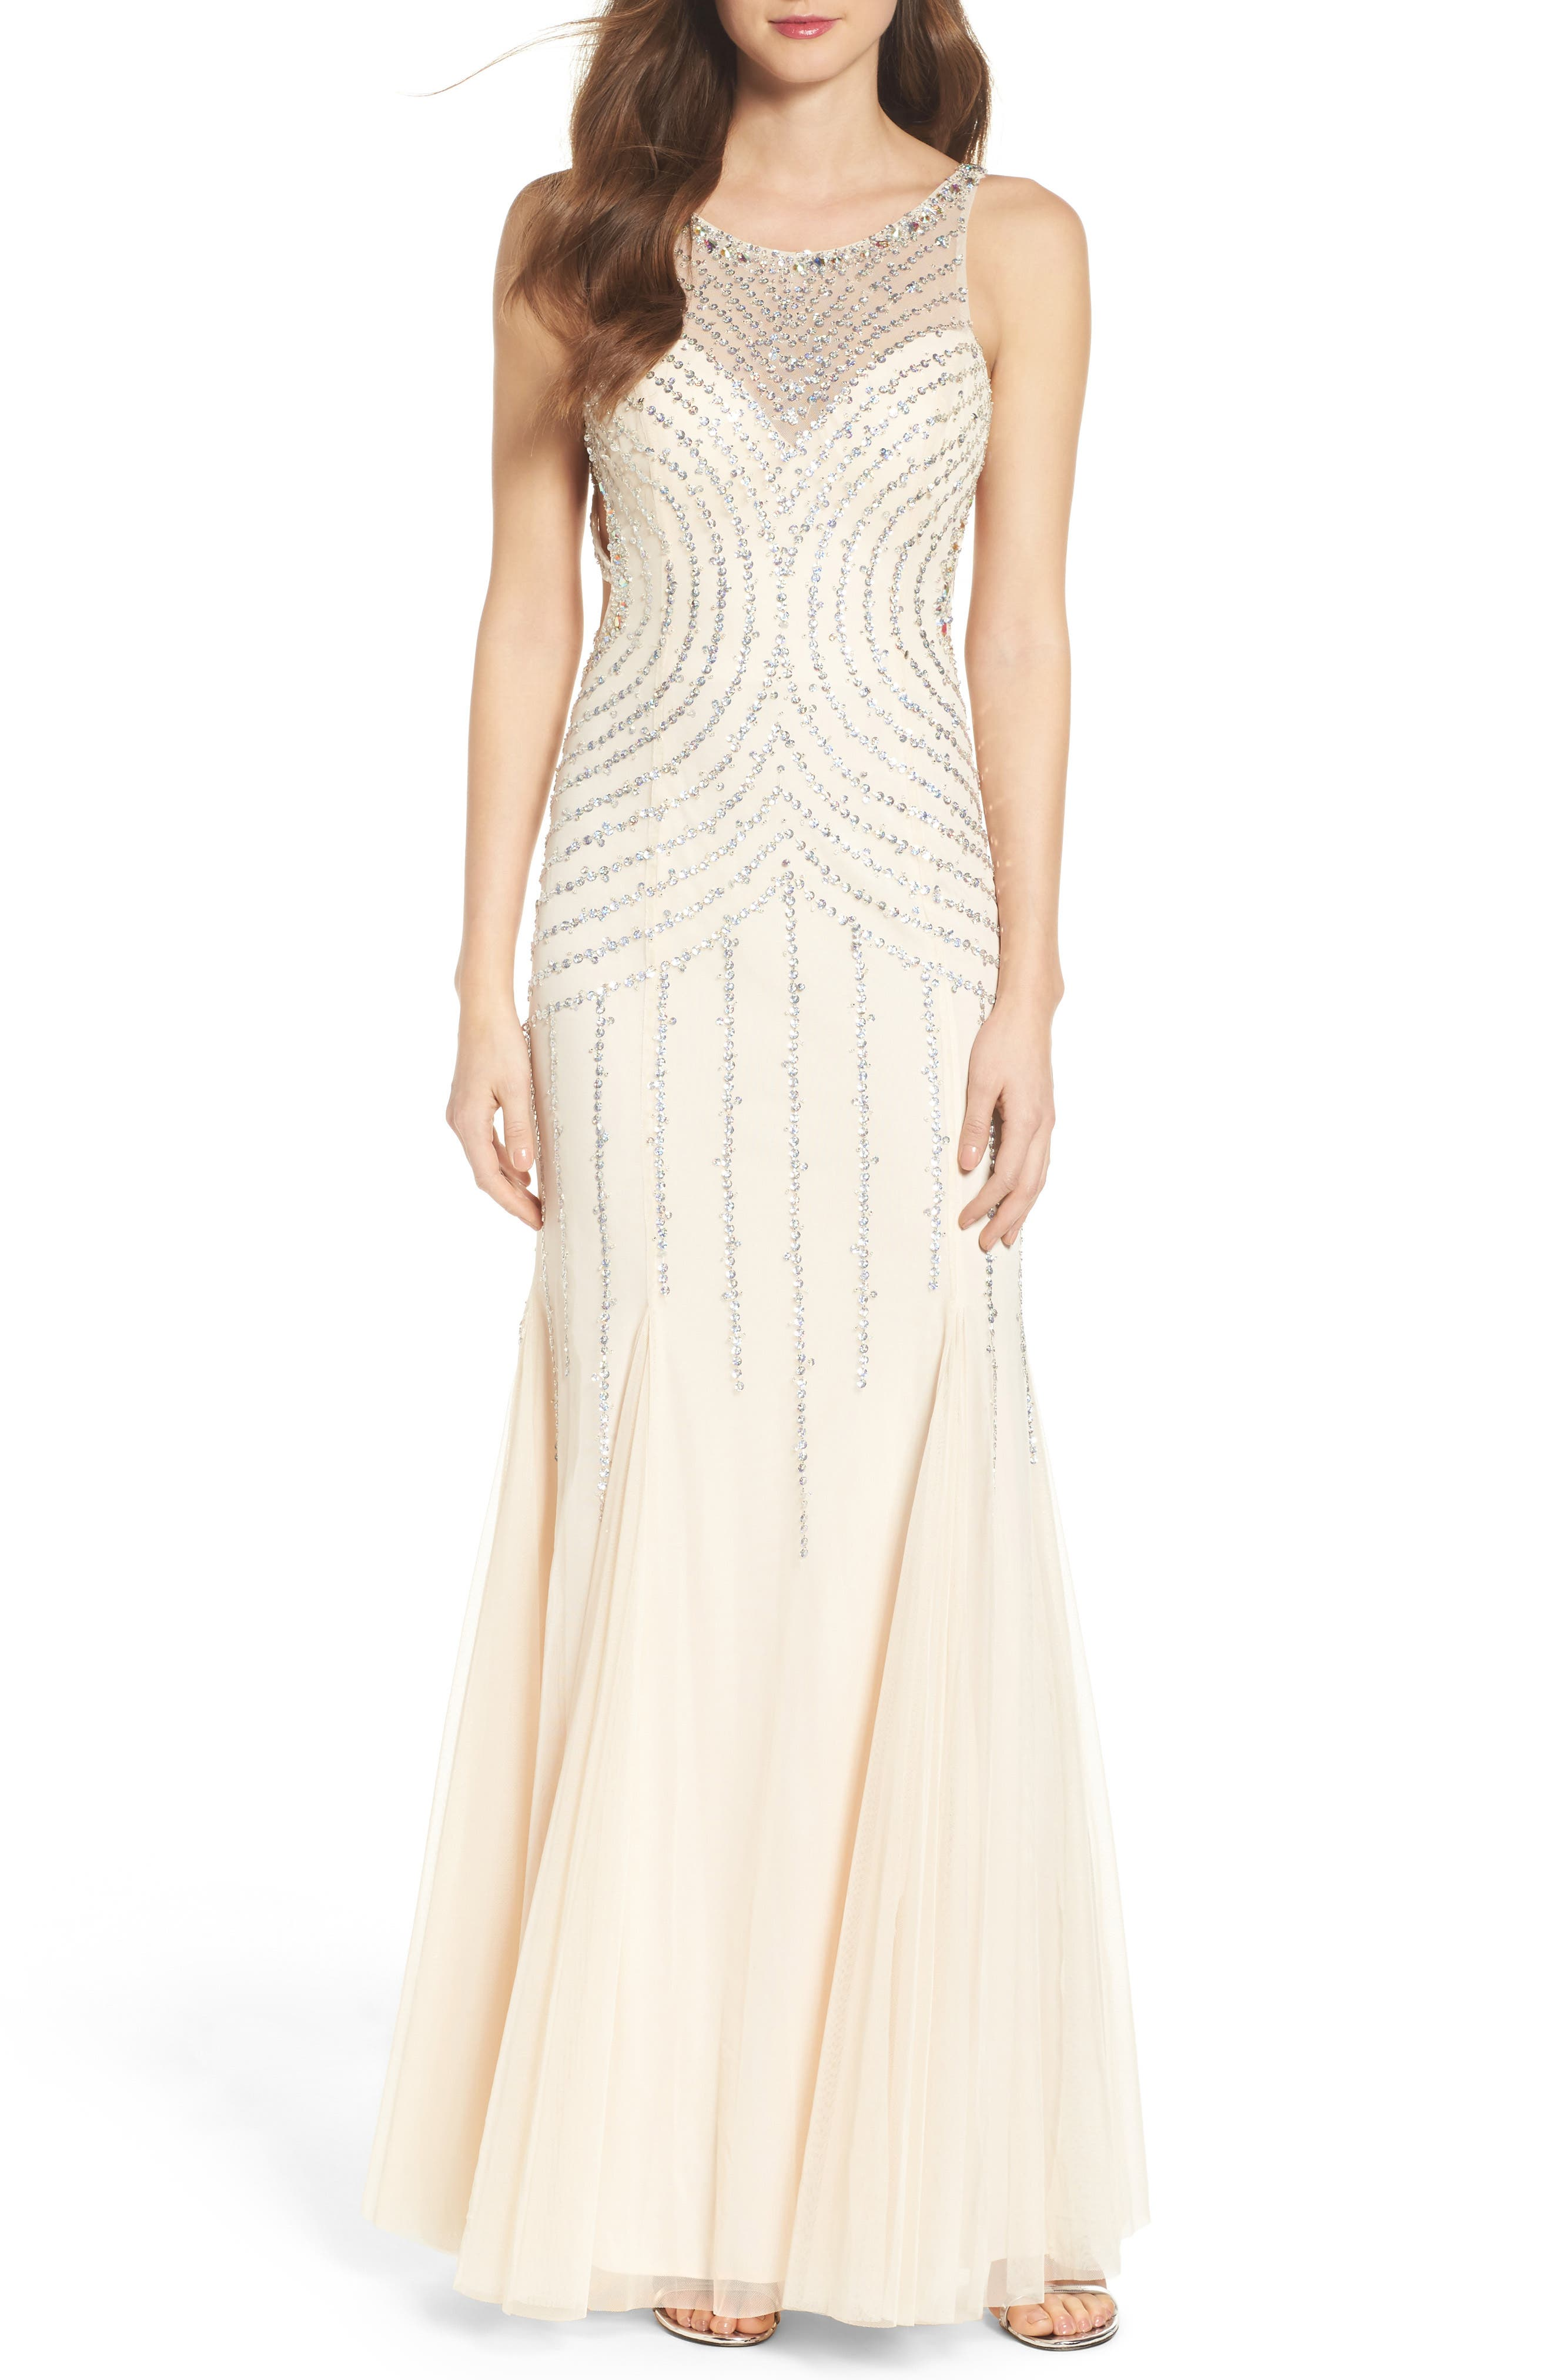 Embellished Mesh Mermaid Gown,                             Main thumbnail 1, color,                             273